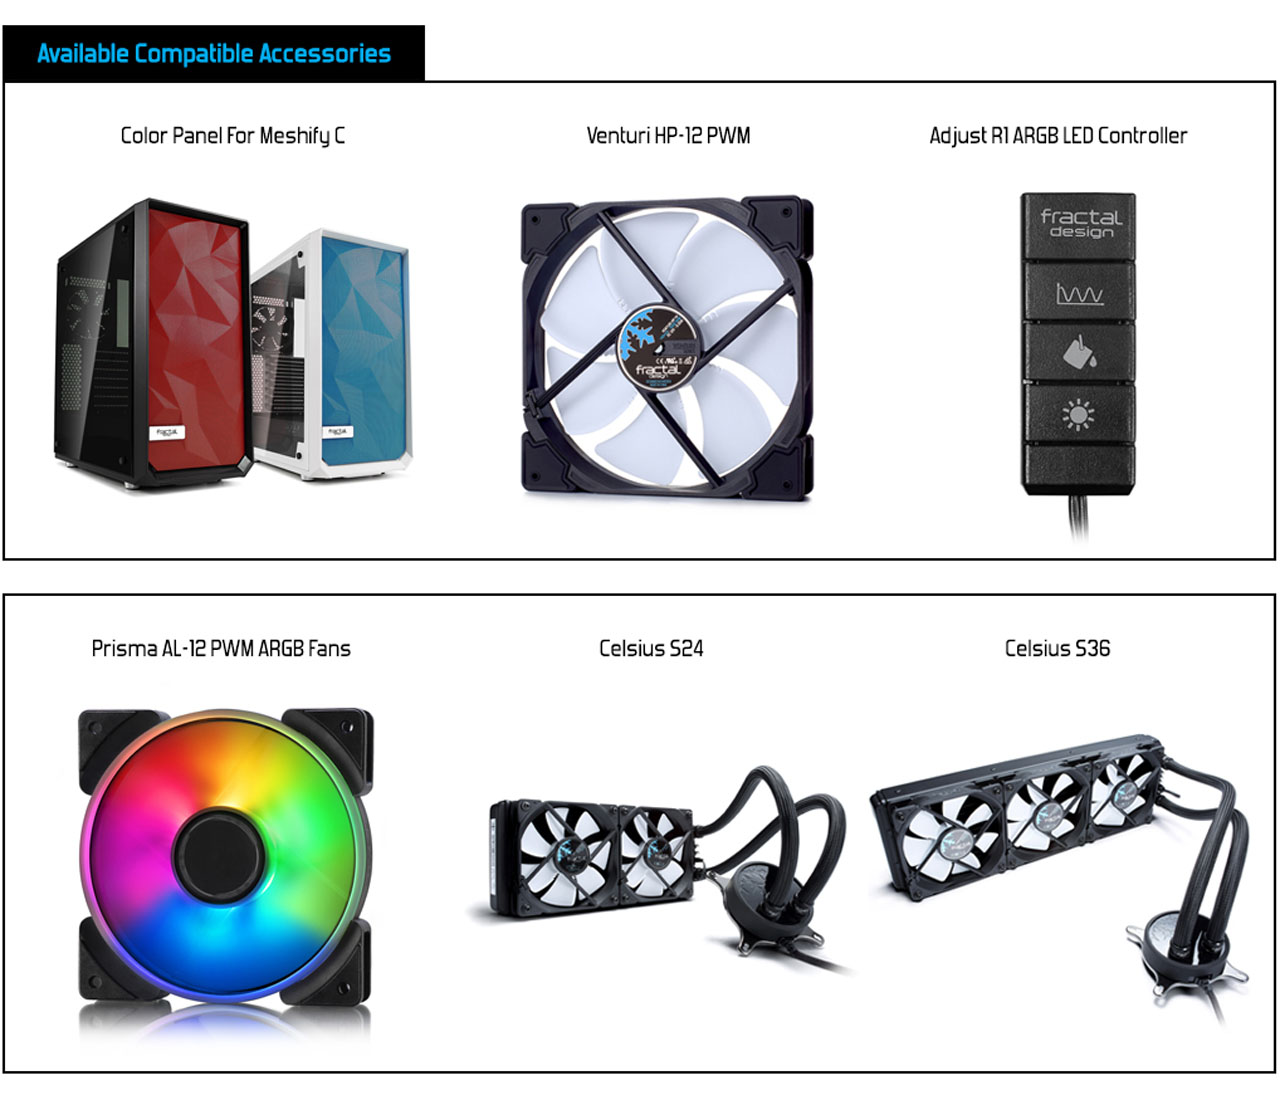 Available Compatible Accessories: Color Panel For Meshify C + Venturi HP-12 PWM + Adjust R1 ARGB LED Controller + Prisma AL-12 PWM ARGB Fans + Celsius S24 + Celsius S36